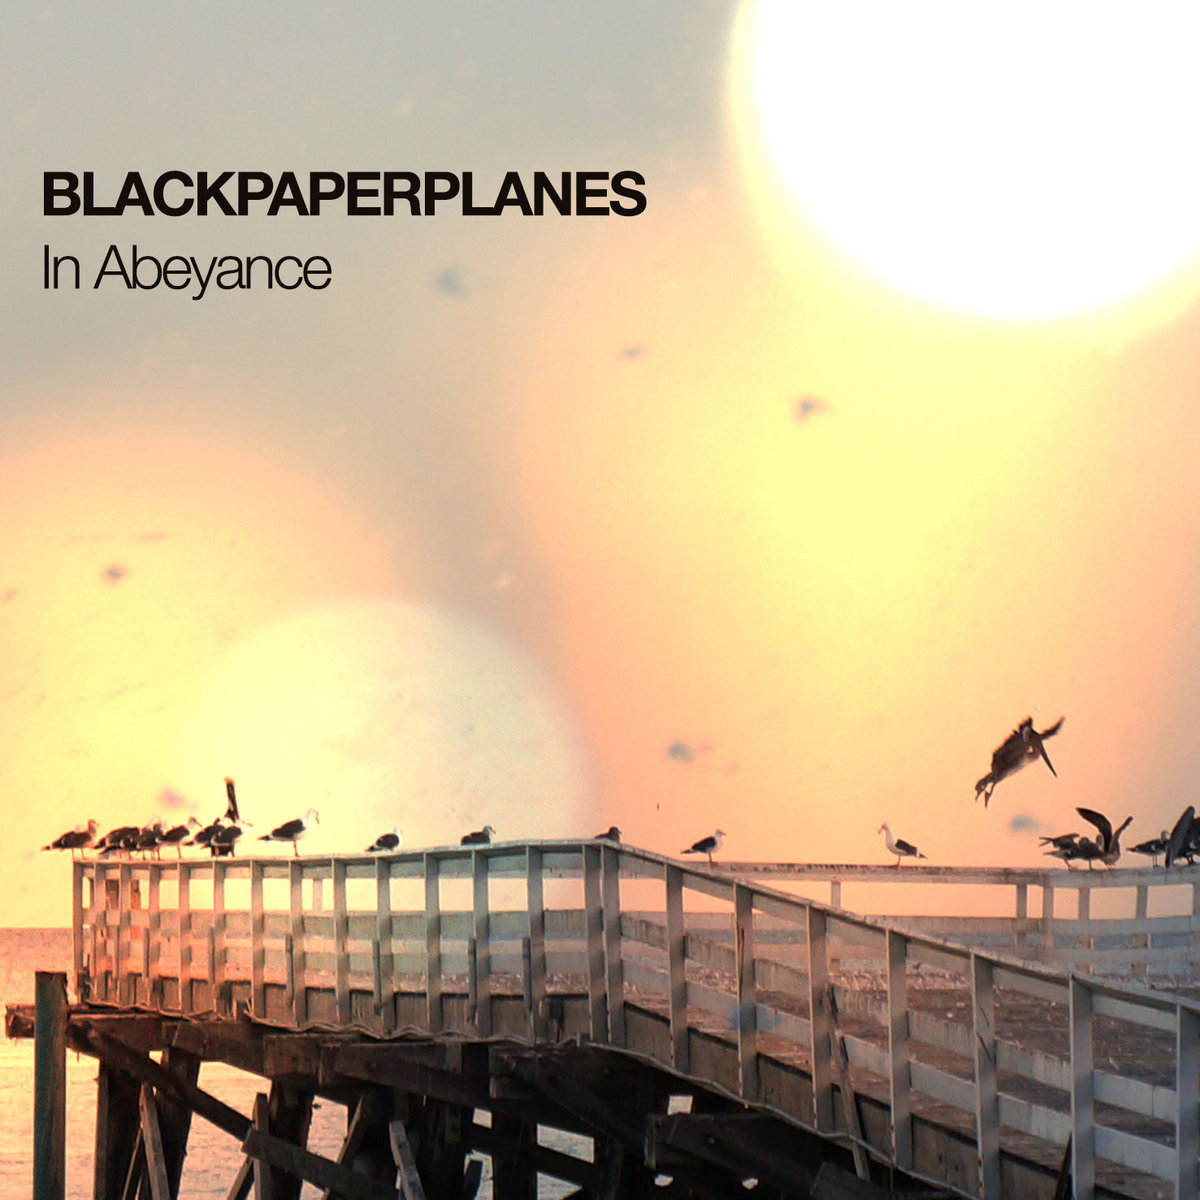 blackpaperplanes - Are You Going To Stay Here? @ 'In Abeyance' album (experimental, rock)